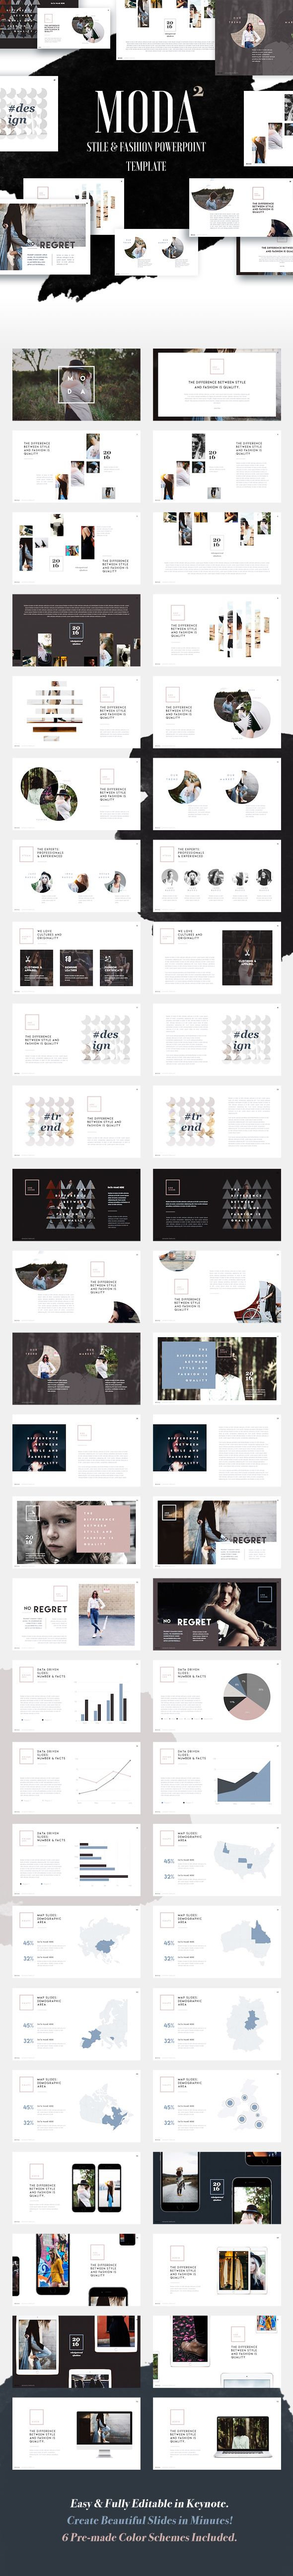 Fashion and Style Powerpoint Template (Moda 2) | Presentation ...